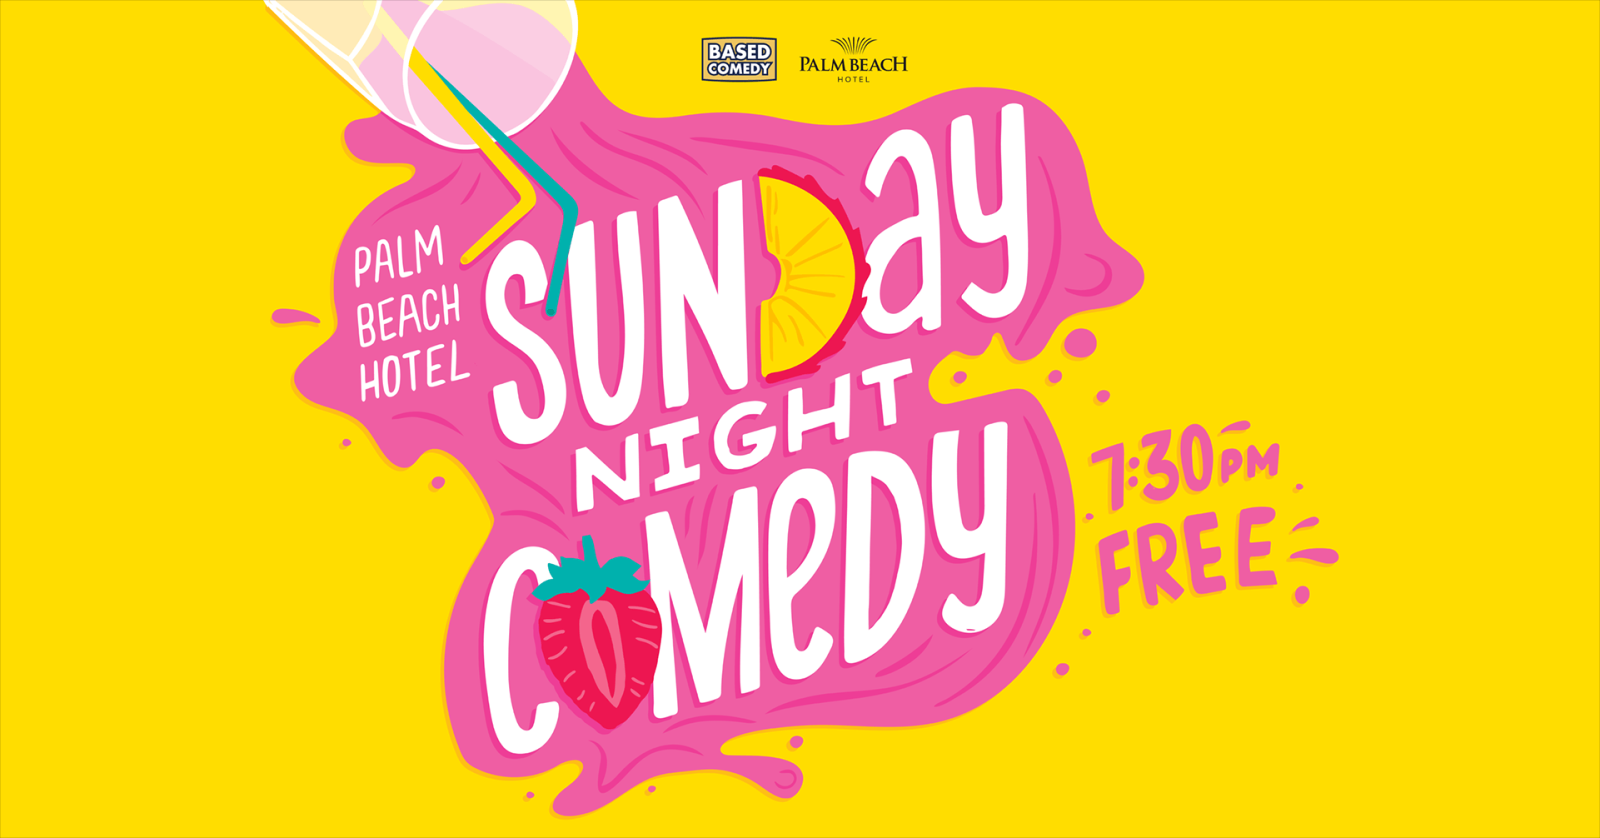 Live Shows: Based Comedy - Oct 06 - The Palm Beach Hotel